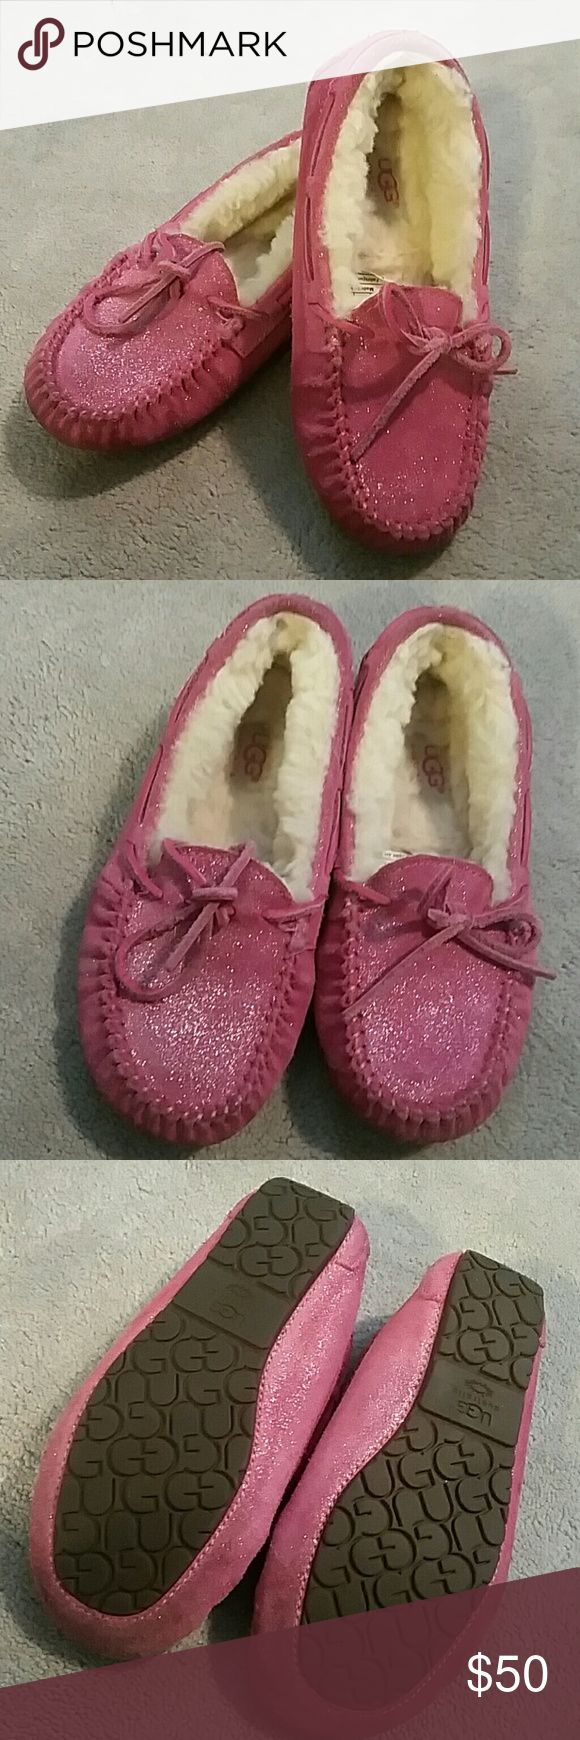 NWOB Kids UGG Dakota Glitter Slippers/Moccasins: 1 Brand new, never worn, no box, from a smoke and pet free home  Dakota UGGs in glitter magenta, super cute and shimmery!  Please note, color is slightly deeper in person, check online for clarity, or feel free to ask questions!  Kids size 1 UGG Shoes Moccasins